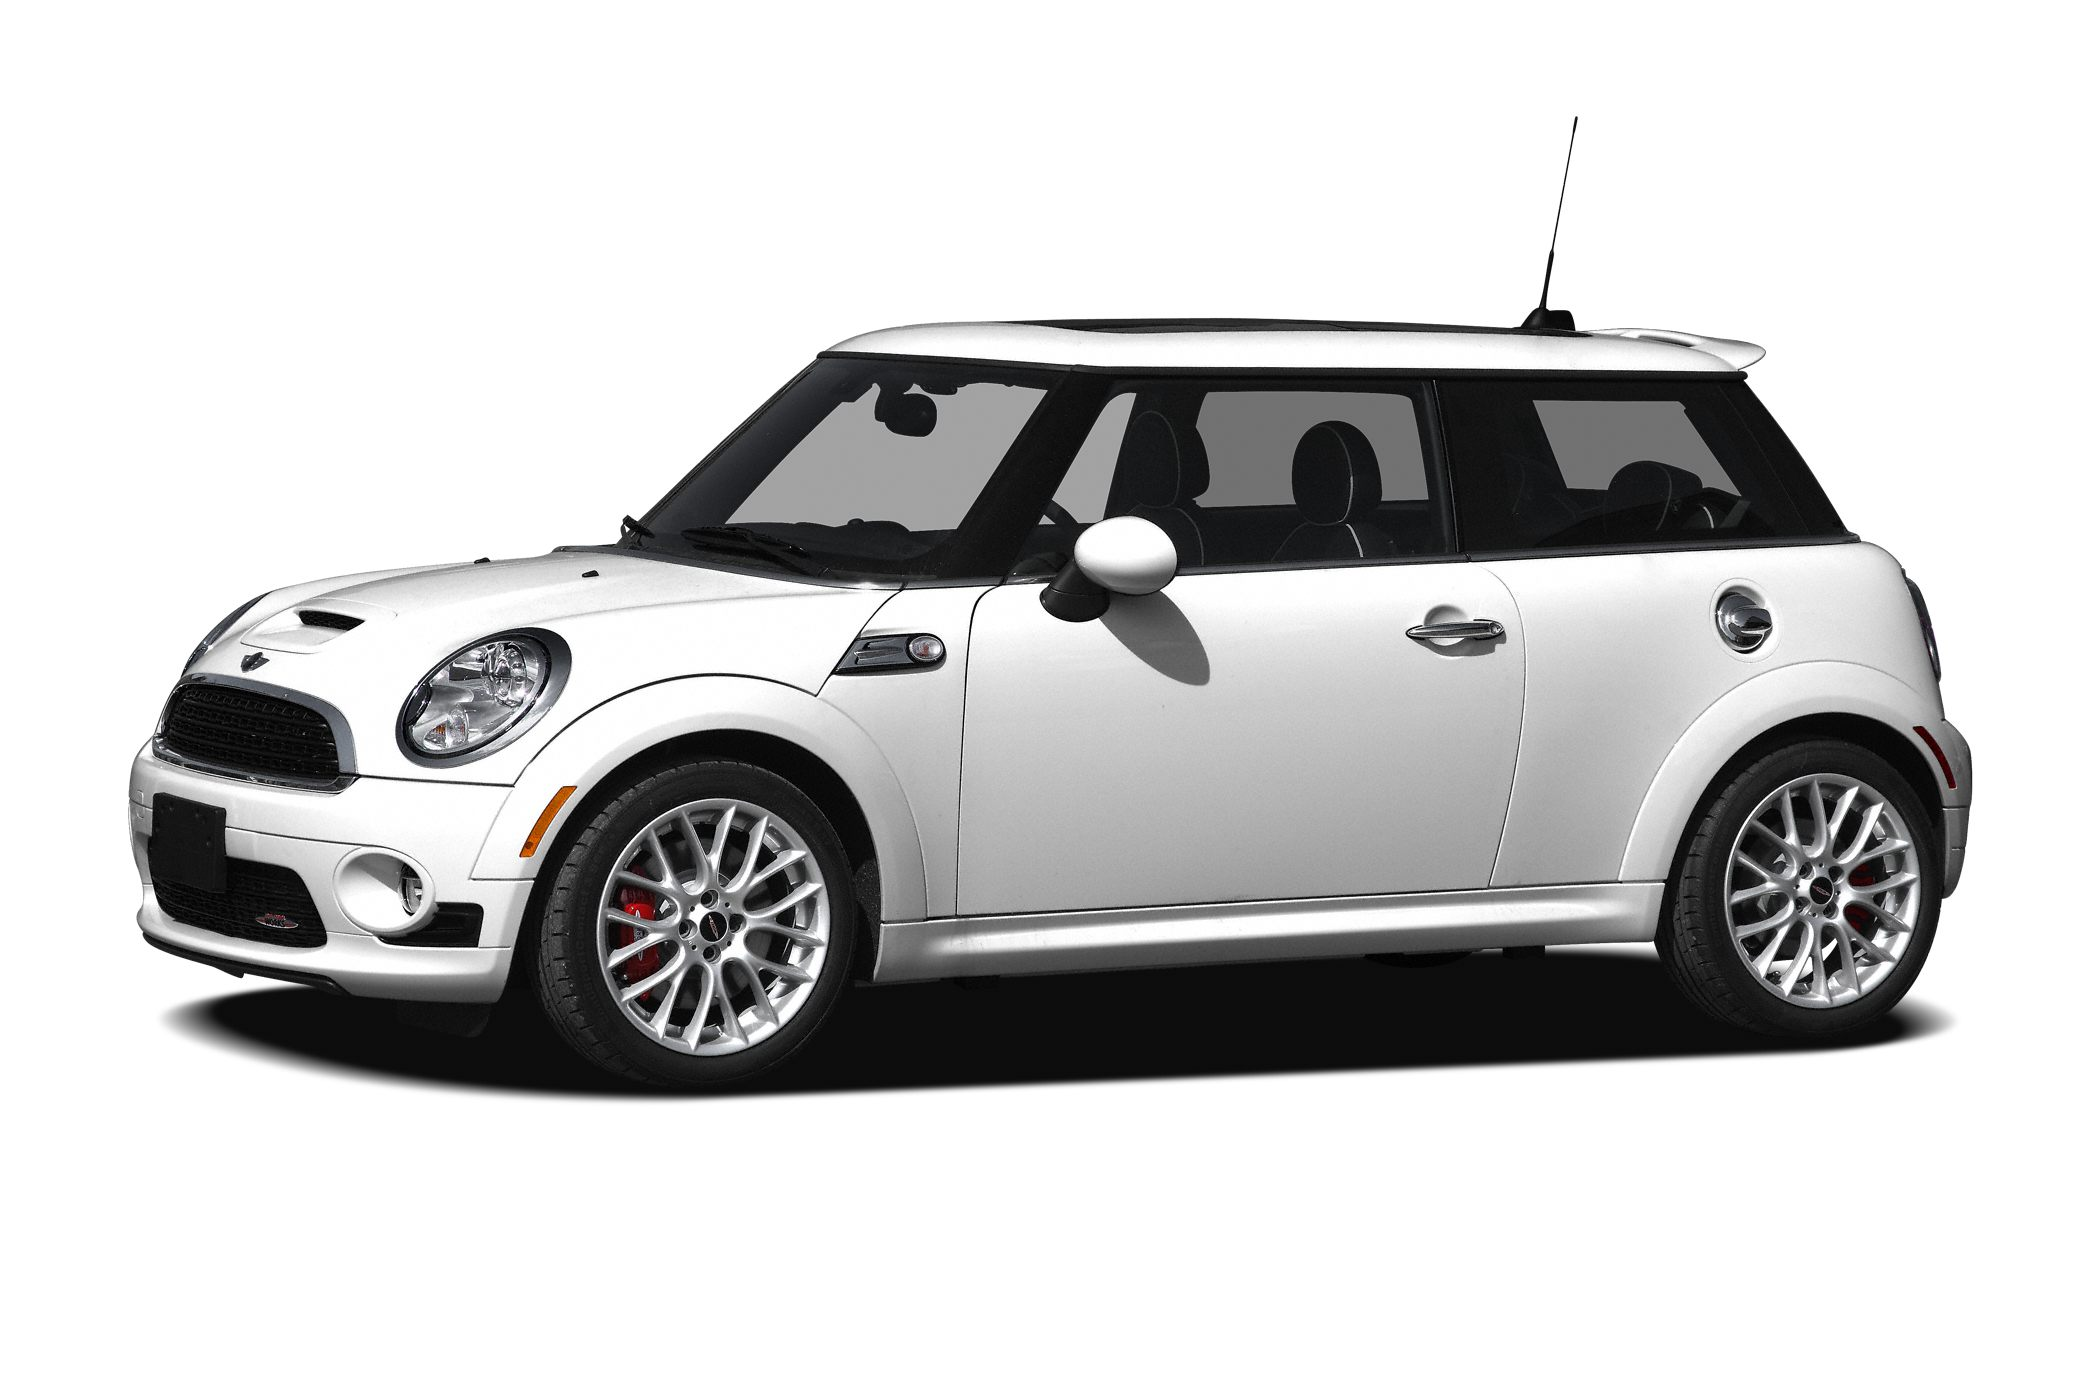 2009 Mini John Cooper Works Pricing And Specs